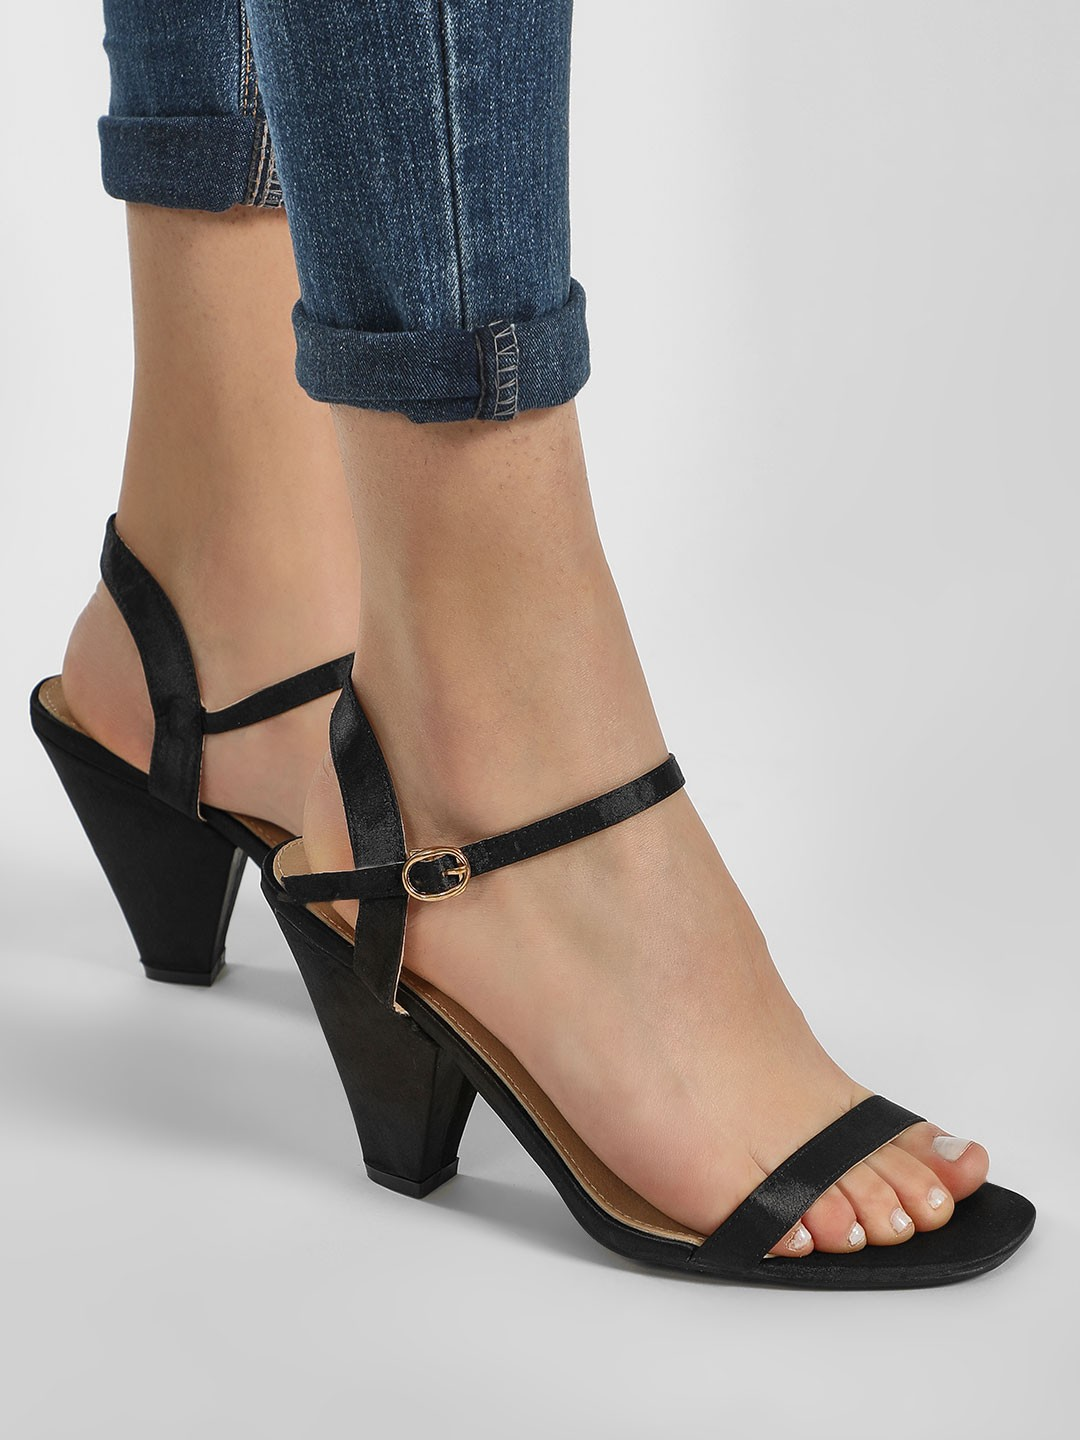 Intoto Black Conical Heeled Sandals 1